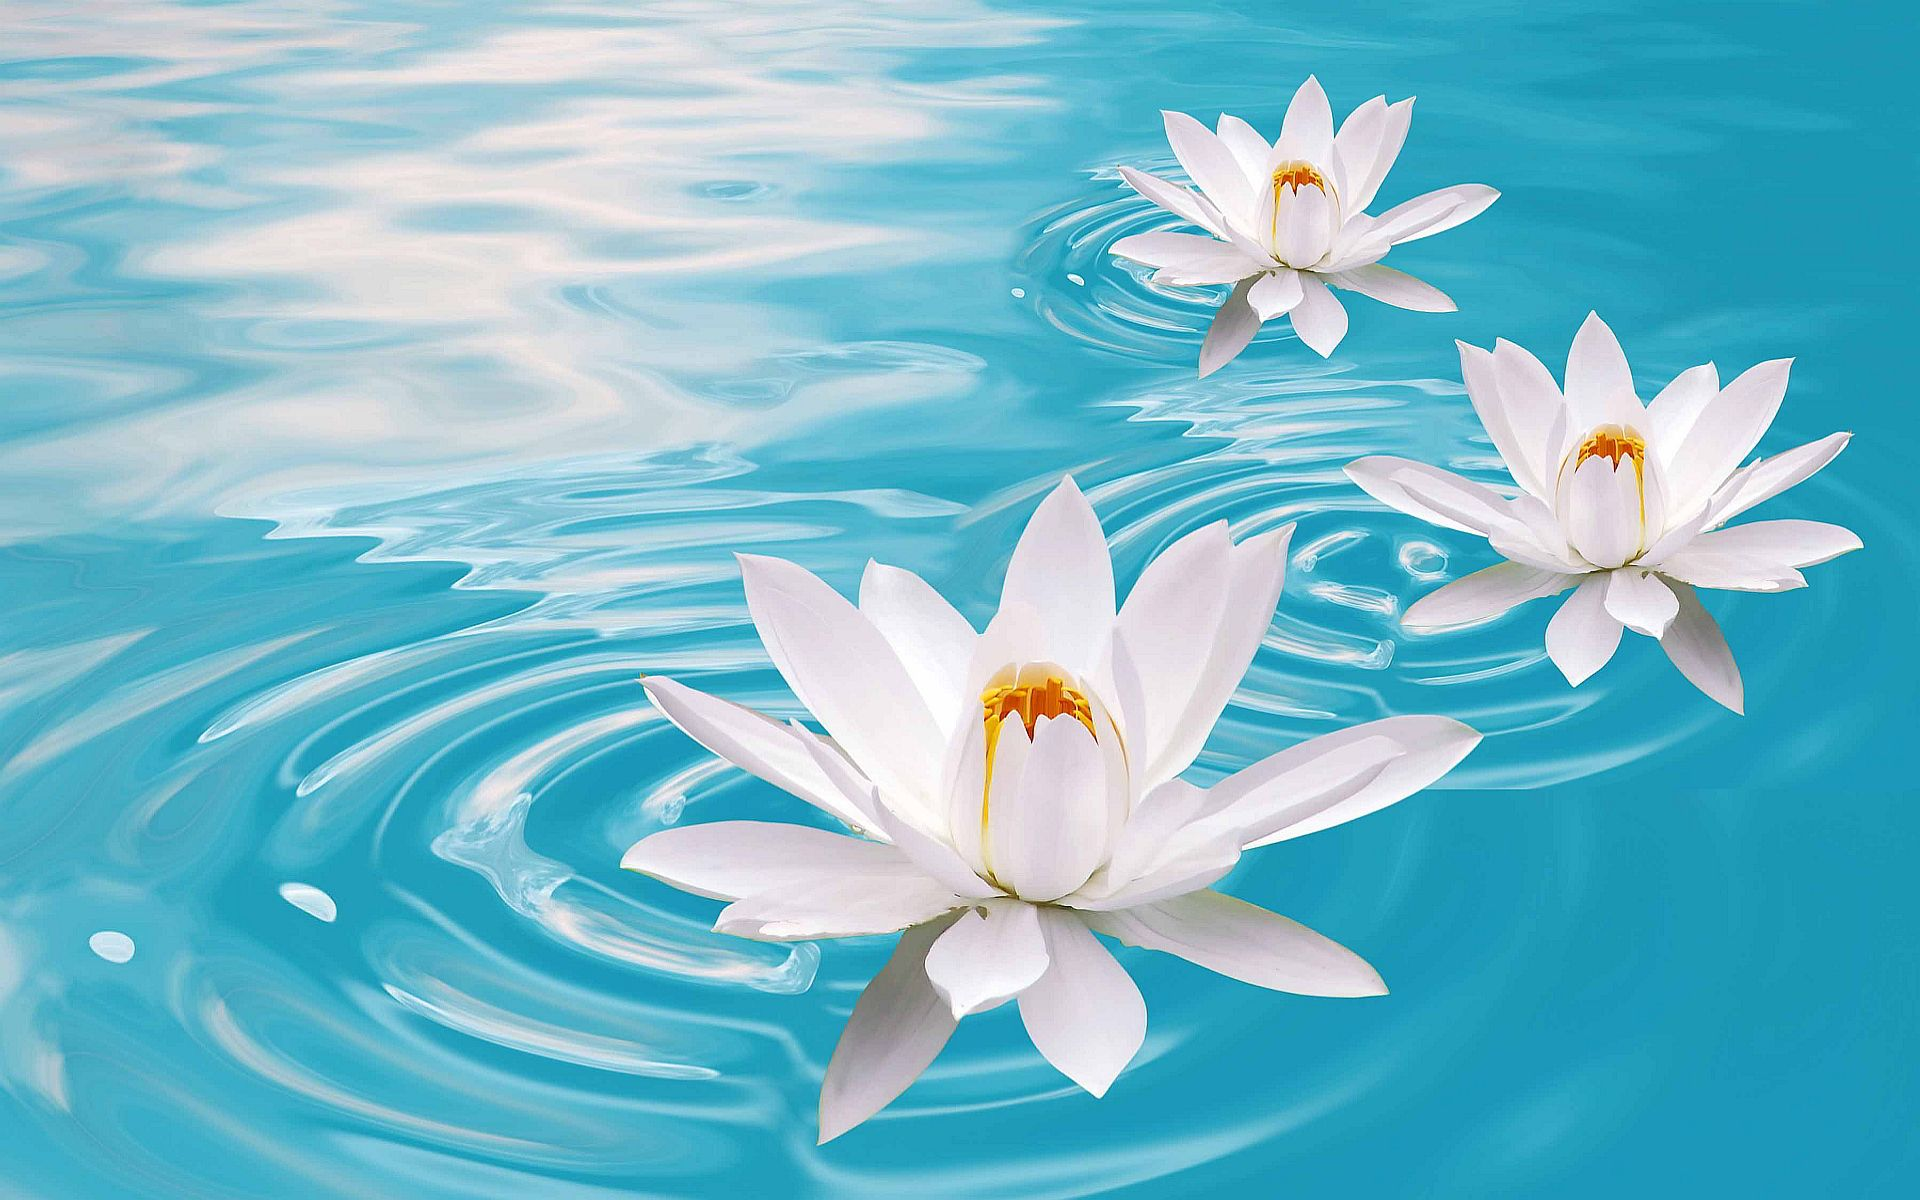 Lotus Flower Wallpaper Free Download Dromgcip Lotus